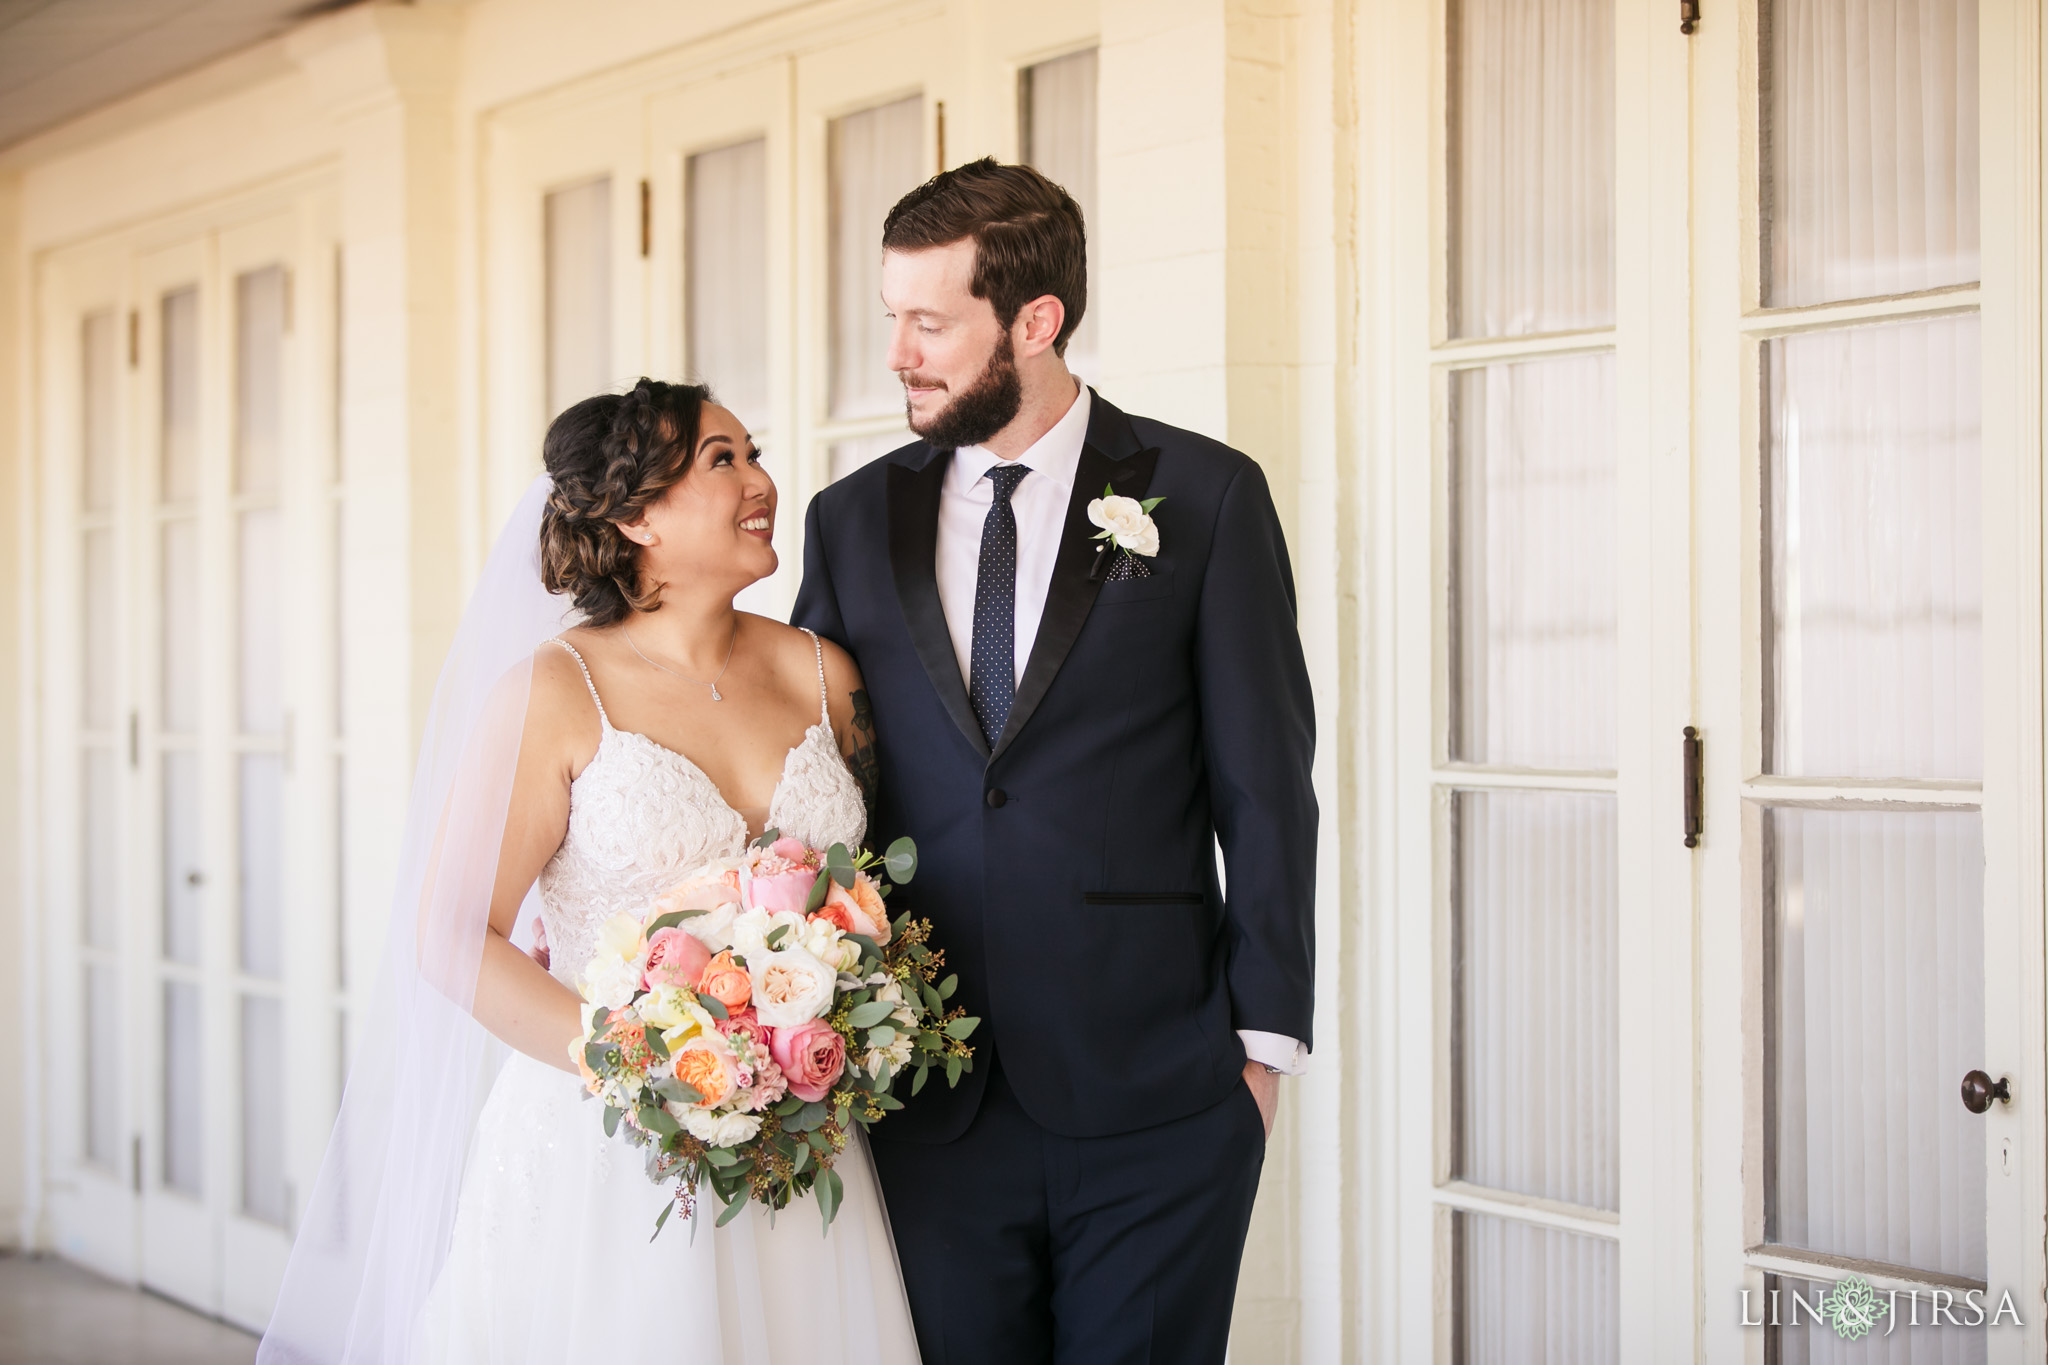 68 The Ebell Los Angeles Wedding Photography